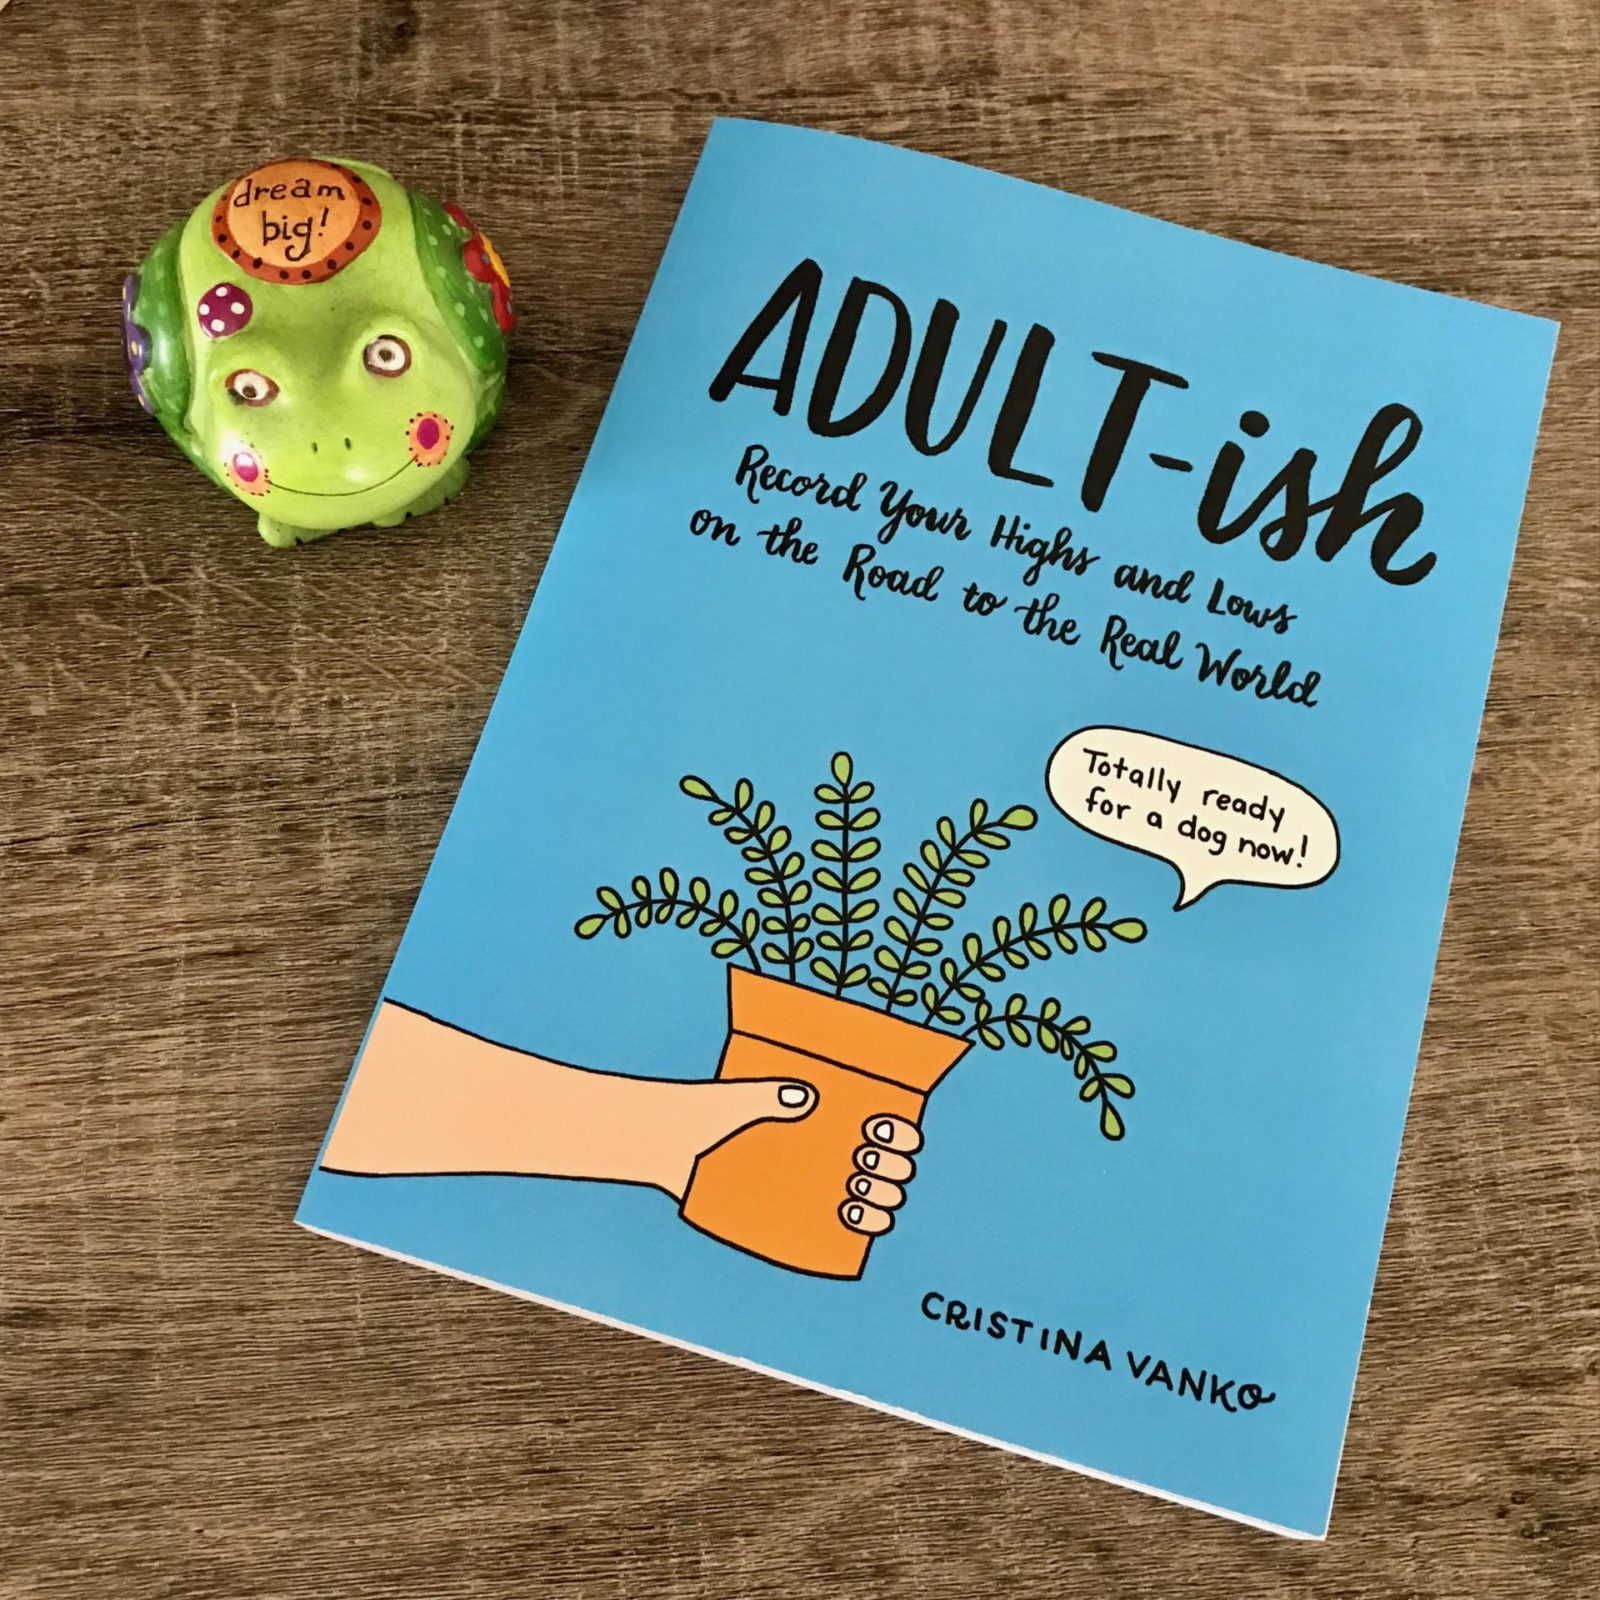 The best book for adults!